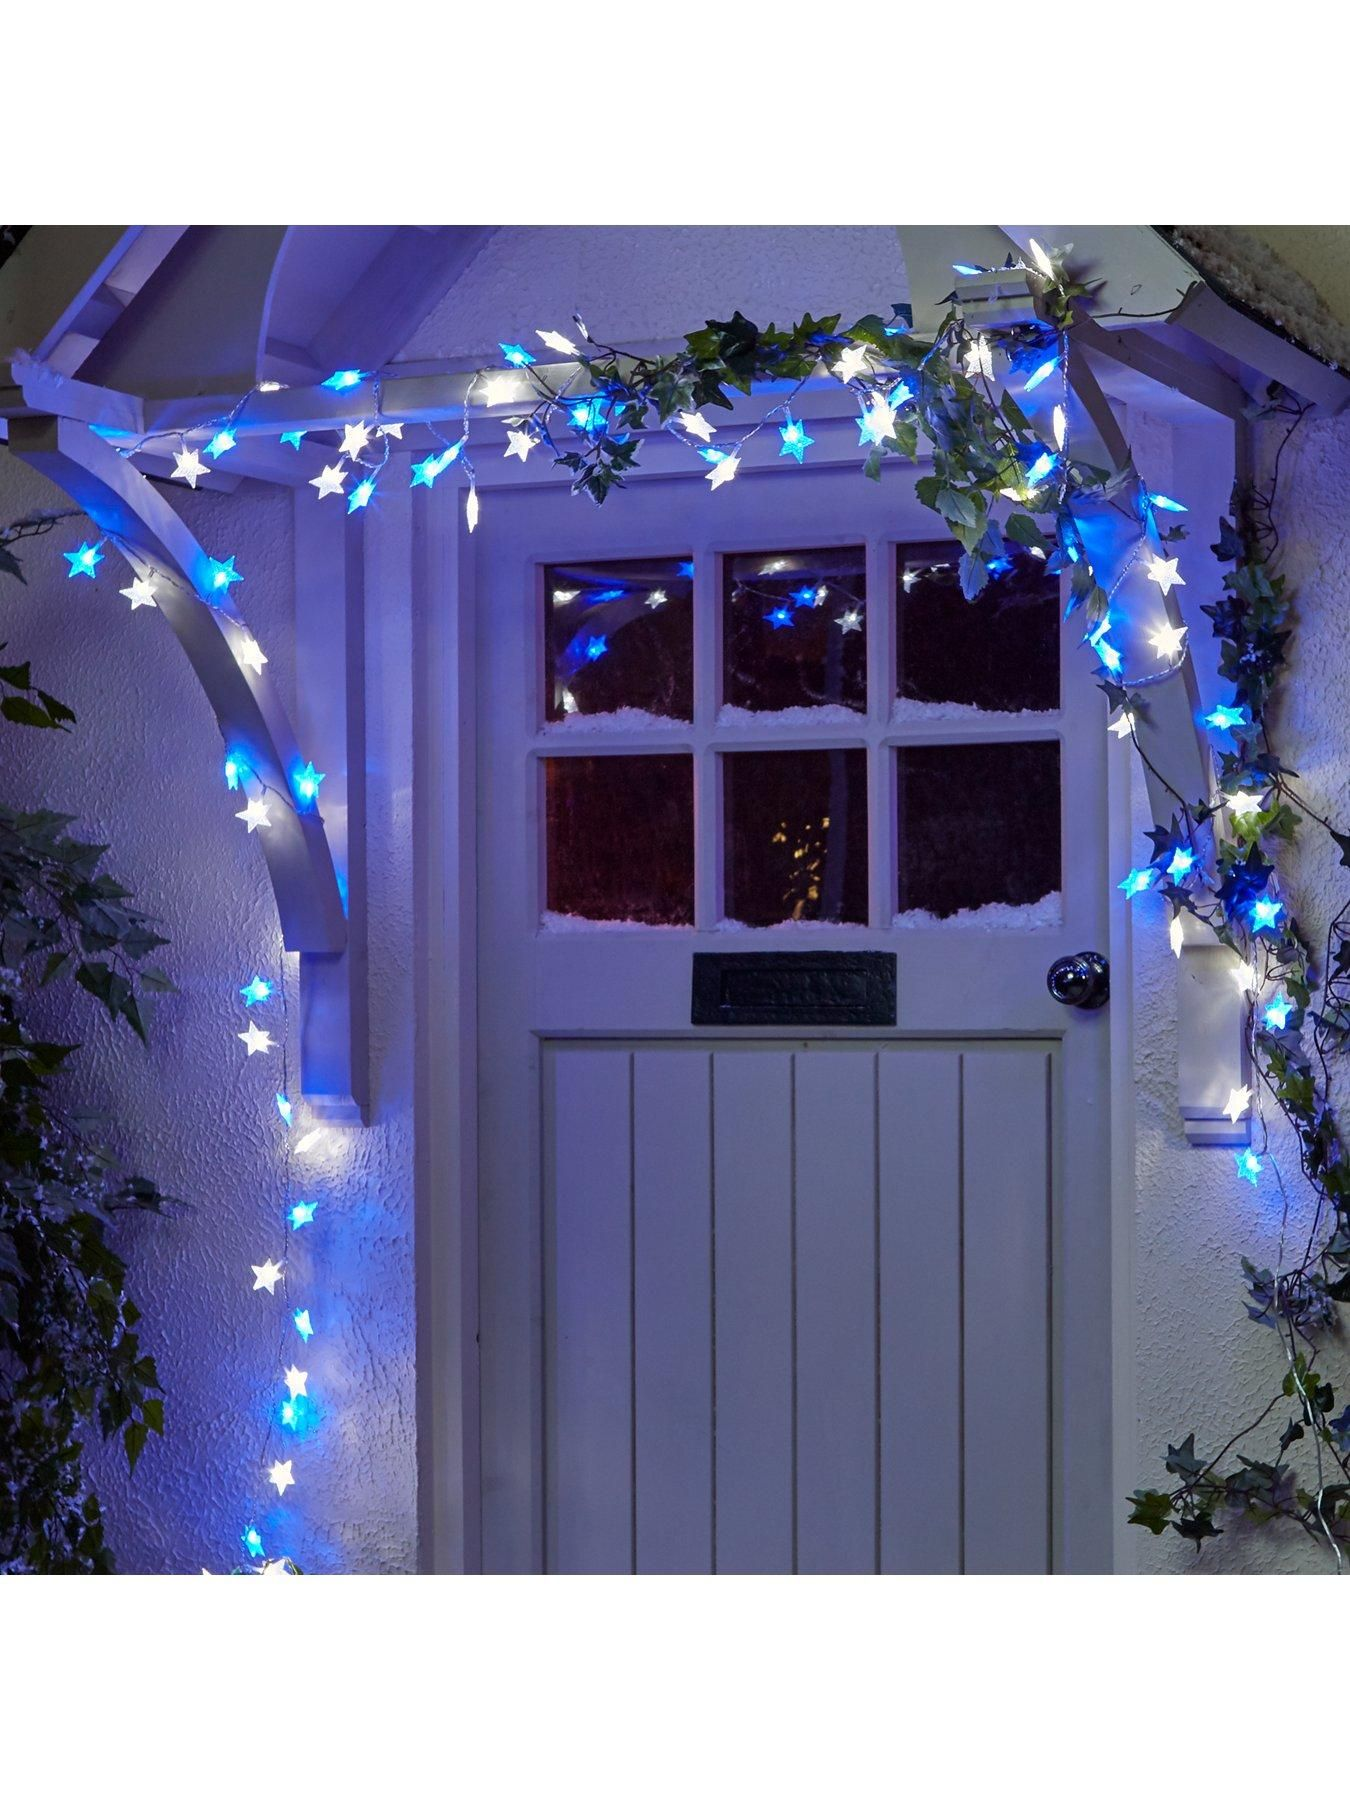 100 Blue And White Led Indoor Outdoor Christmas Star Lights In One Colour Christmas Lights Outdoor Christmas Blue Christmas Lights